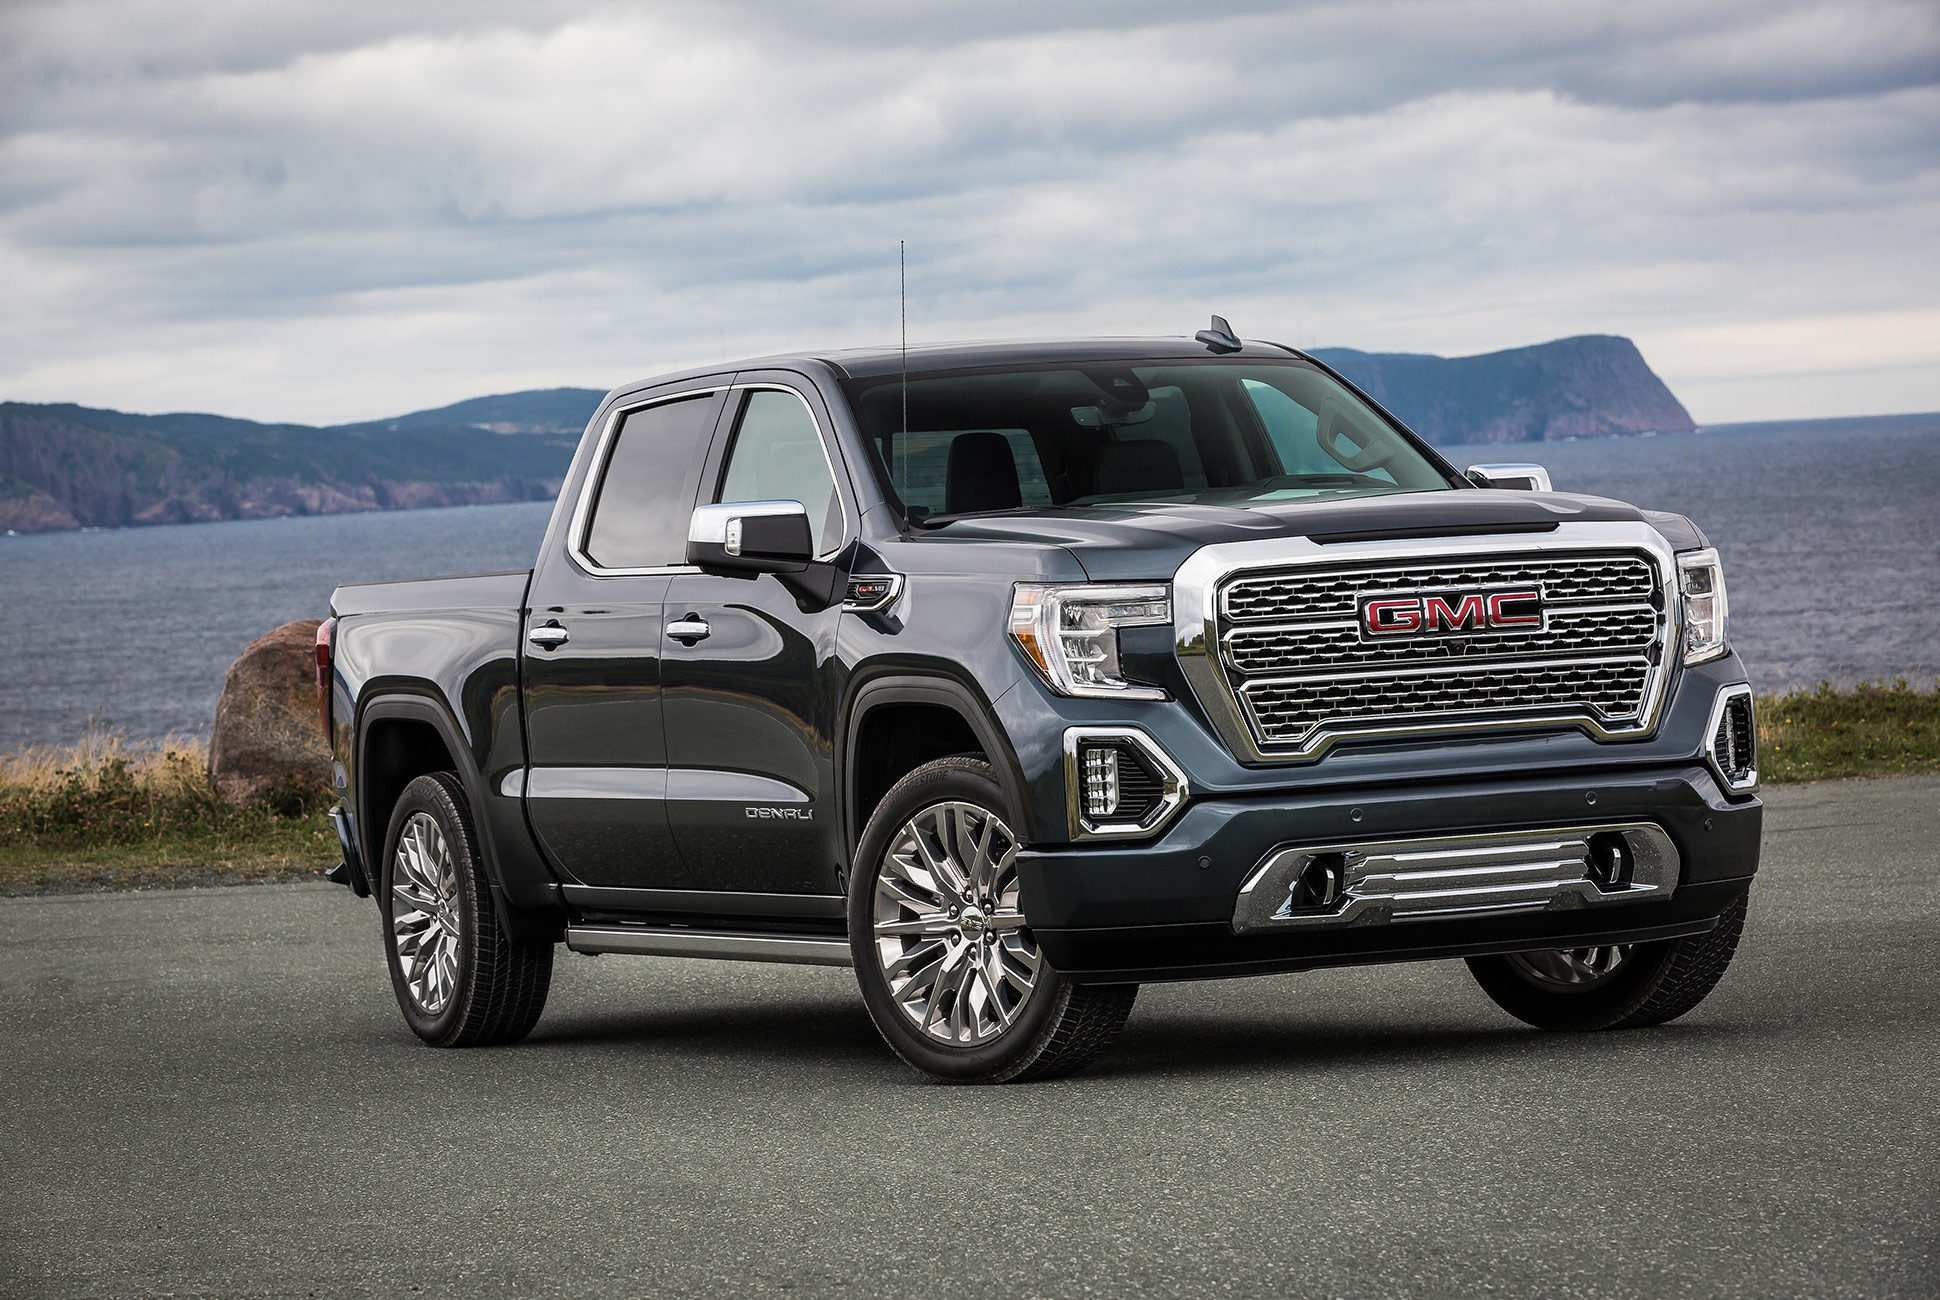 17 All New 2019 Gmc Sierra Images Exterior